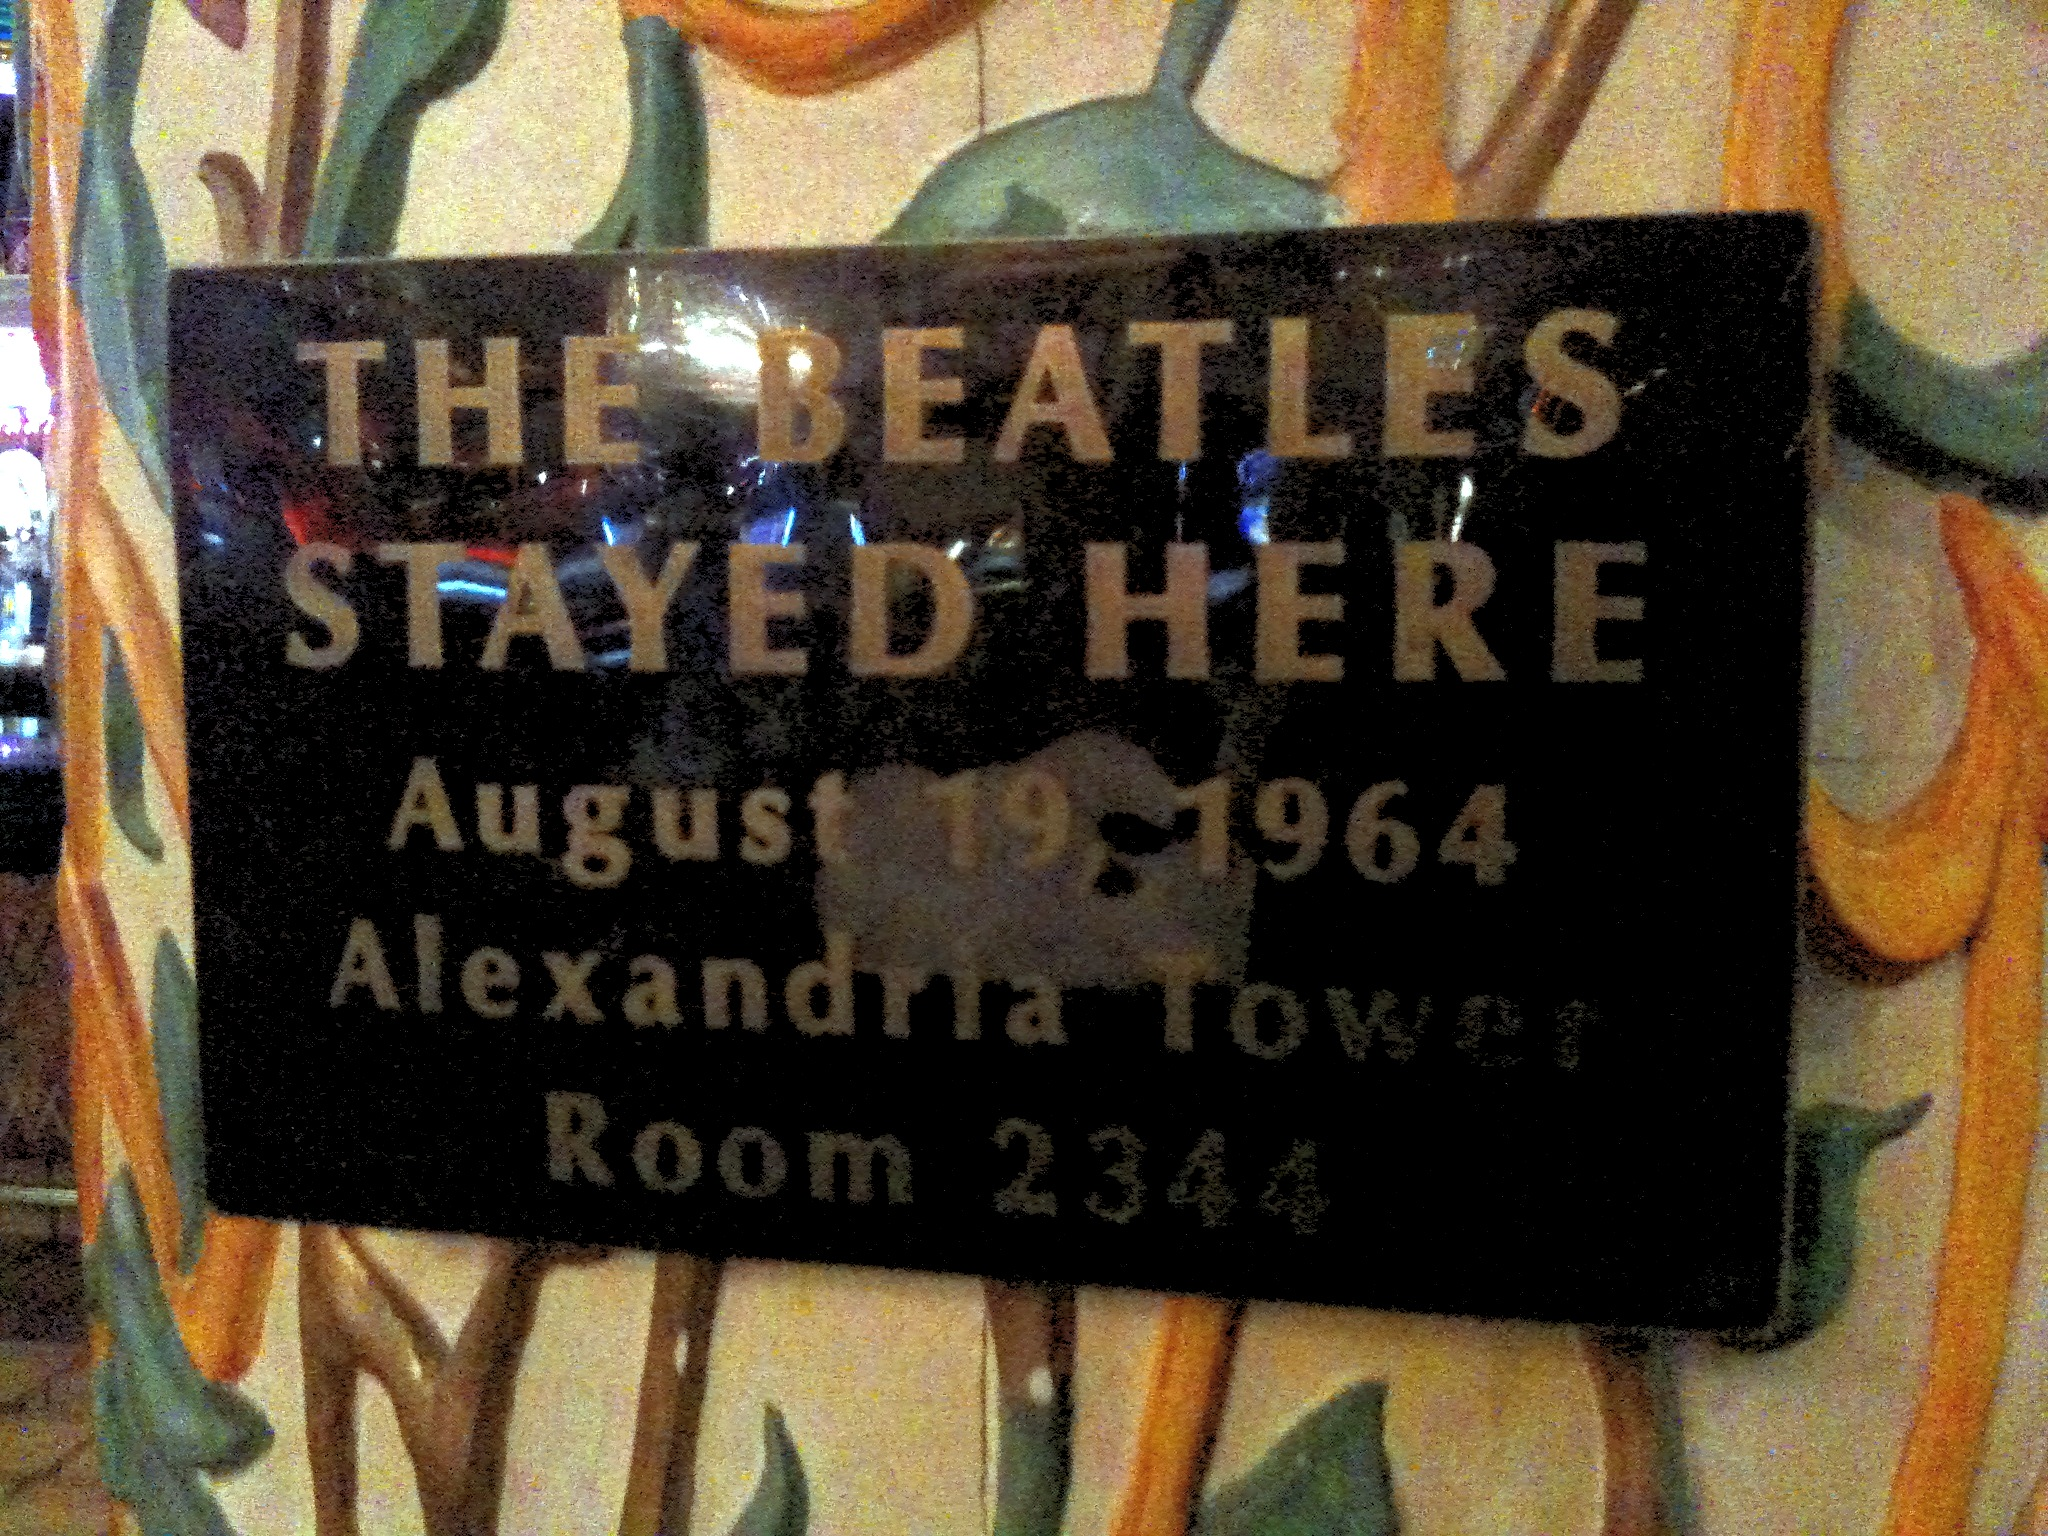 File:The Beatles Stayed Here August 19 1964 Alexandria Tower Room 2344.jpg